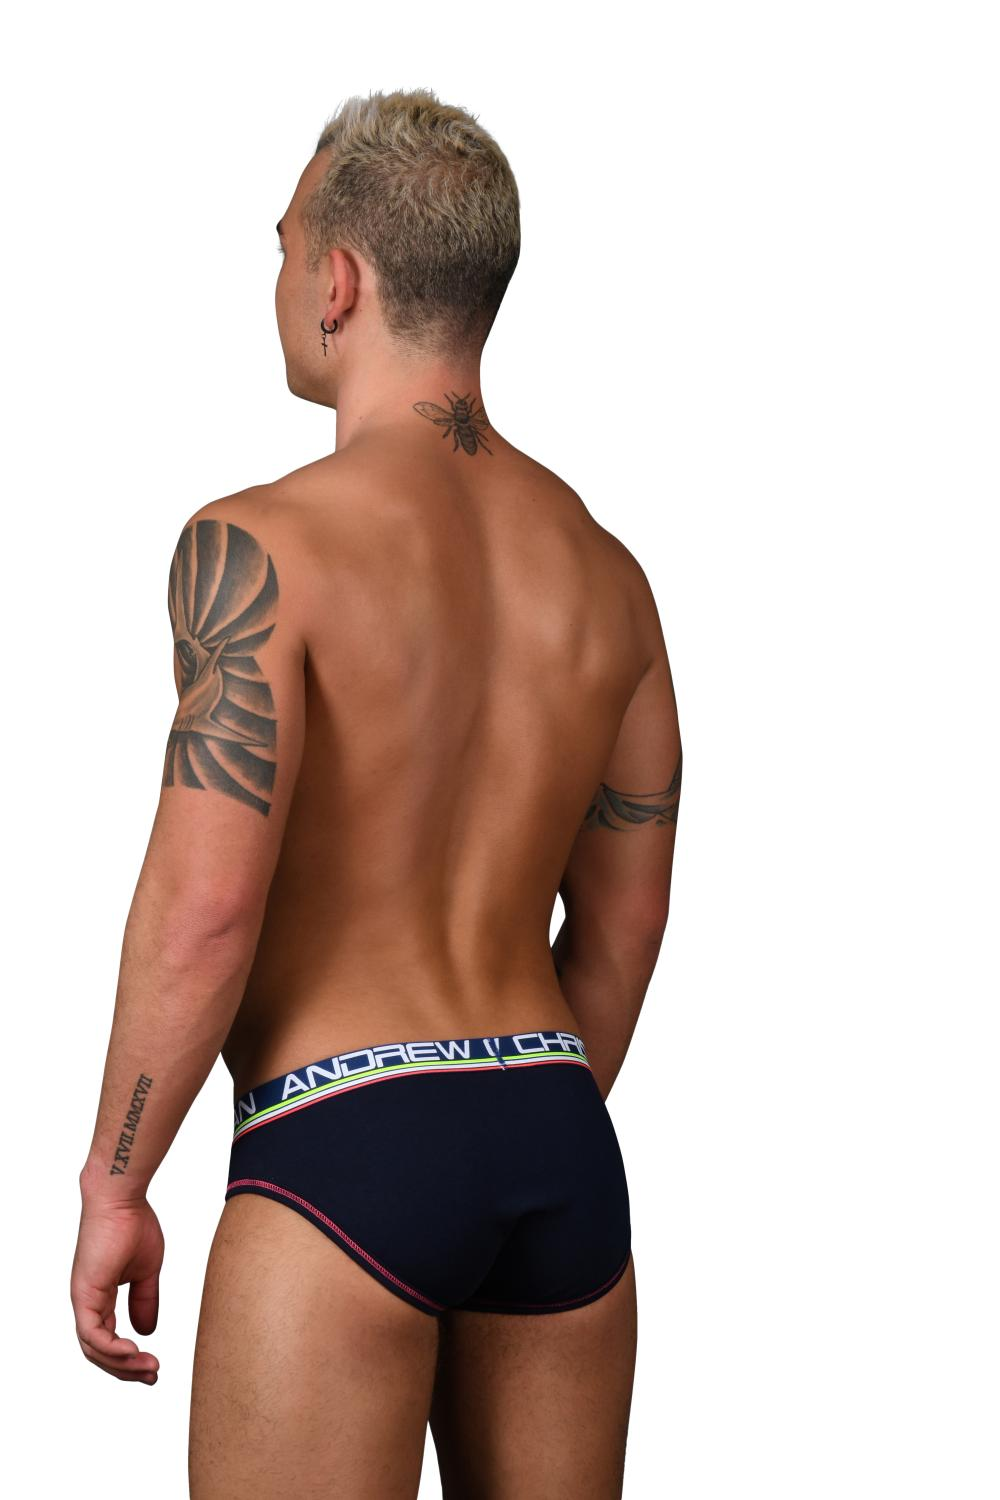 Almost Naked Cotton Slipy ANDREW CHRISTIAN Navy5